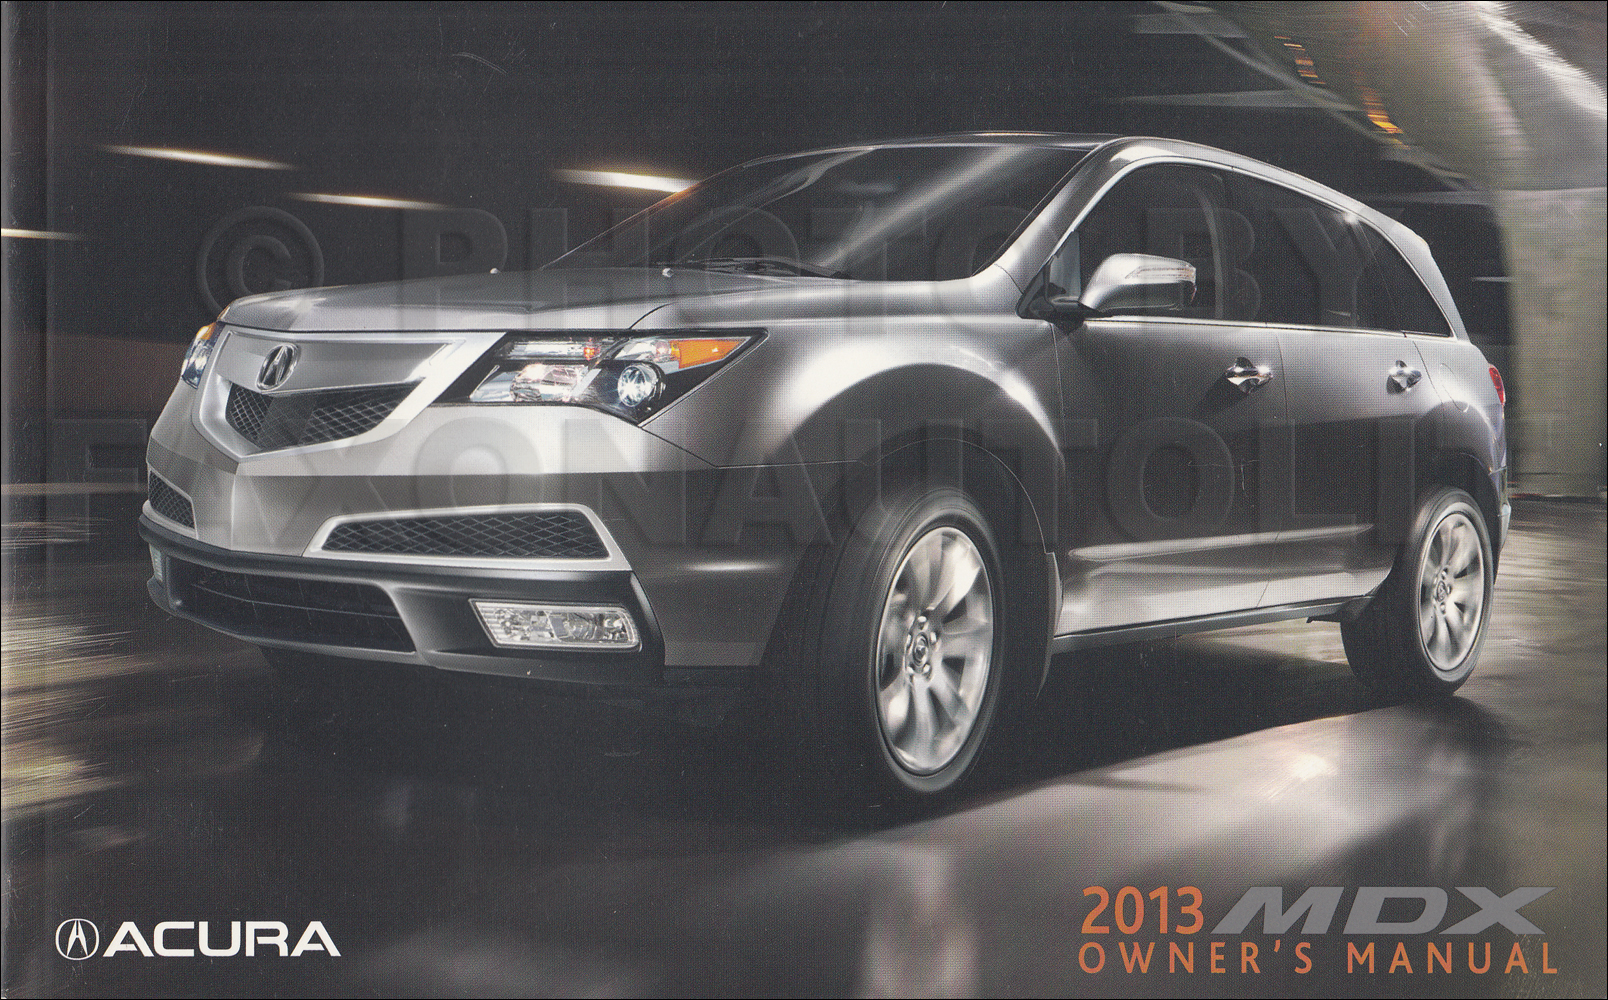 2013 Acura MDX Owner's Manual Original